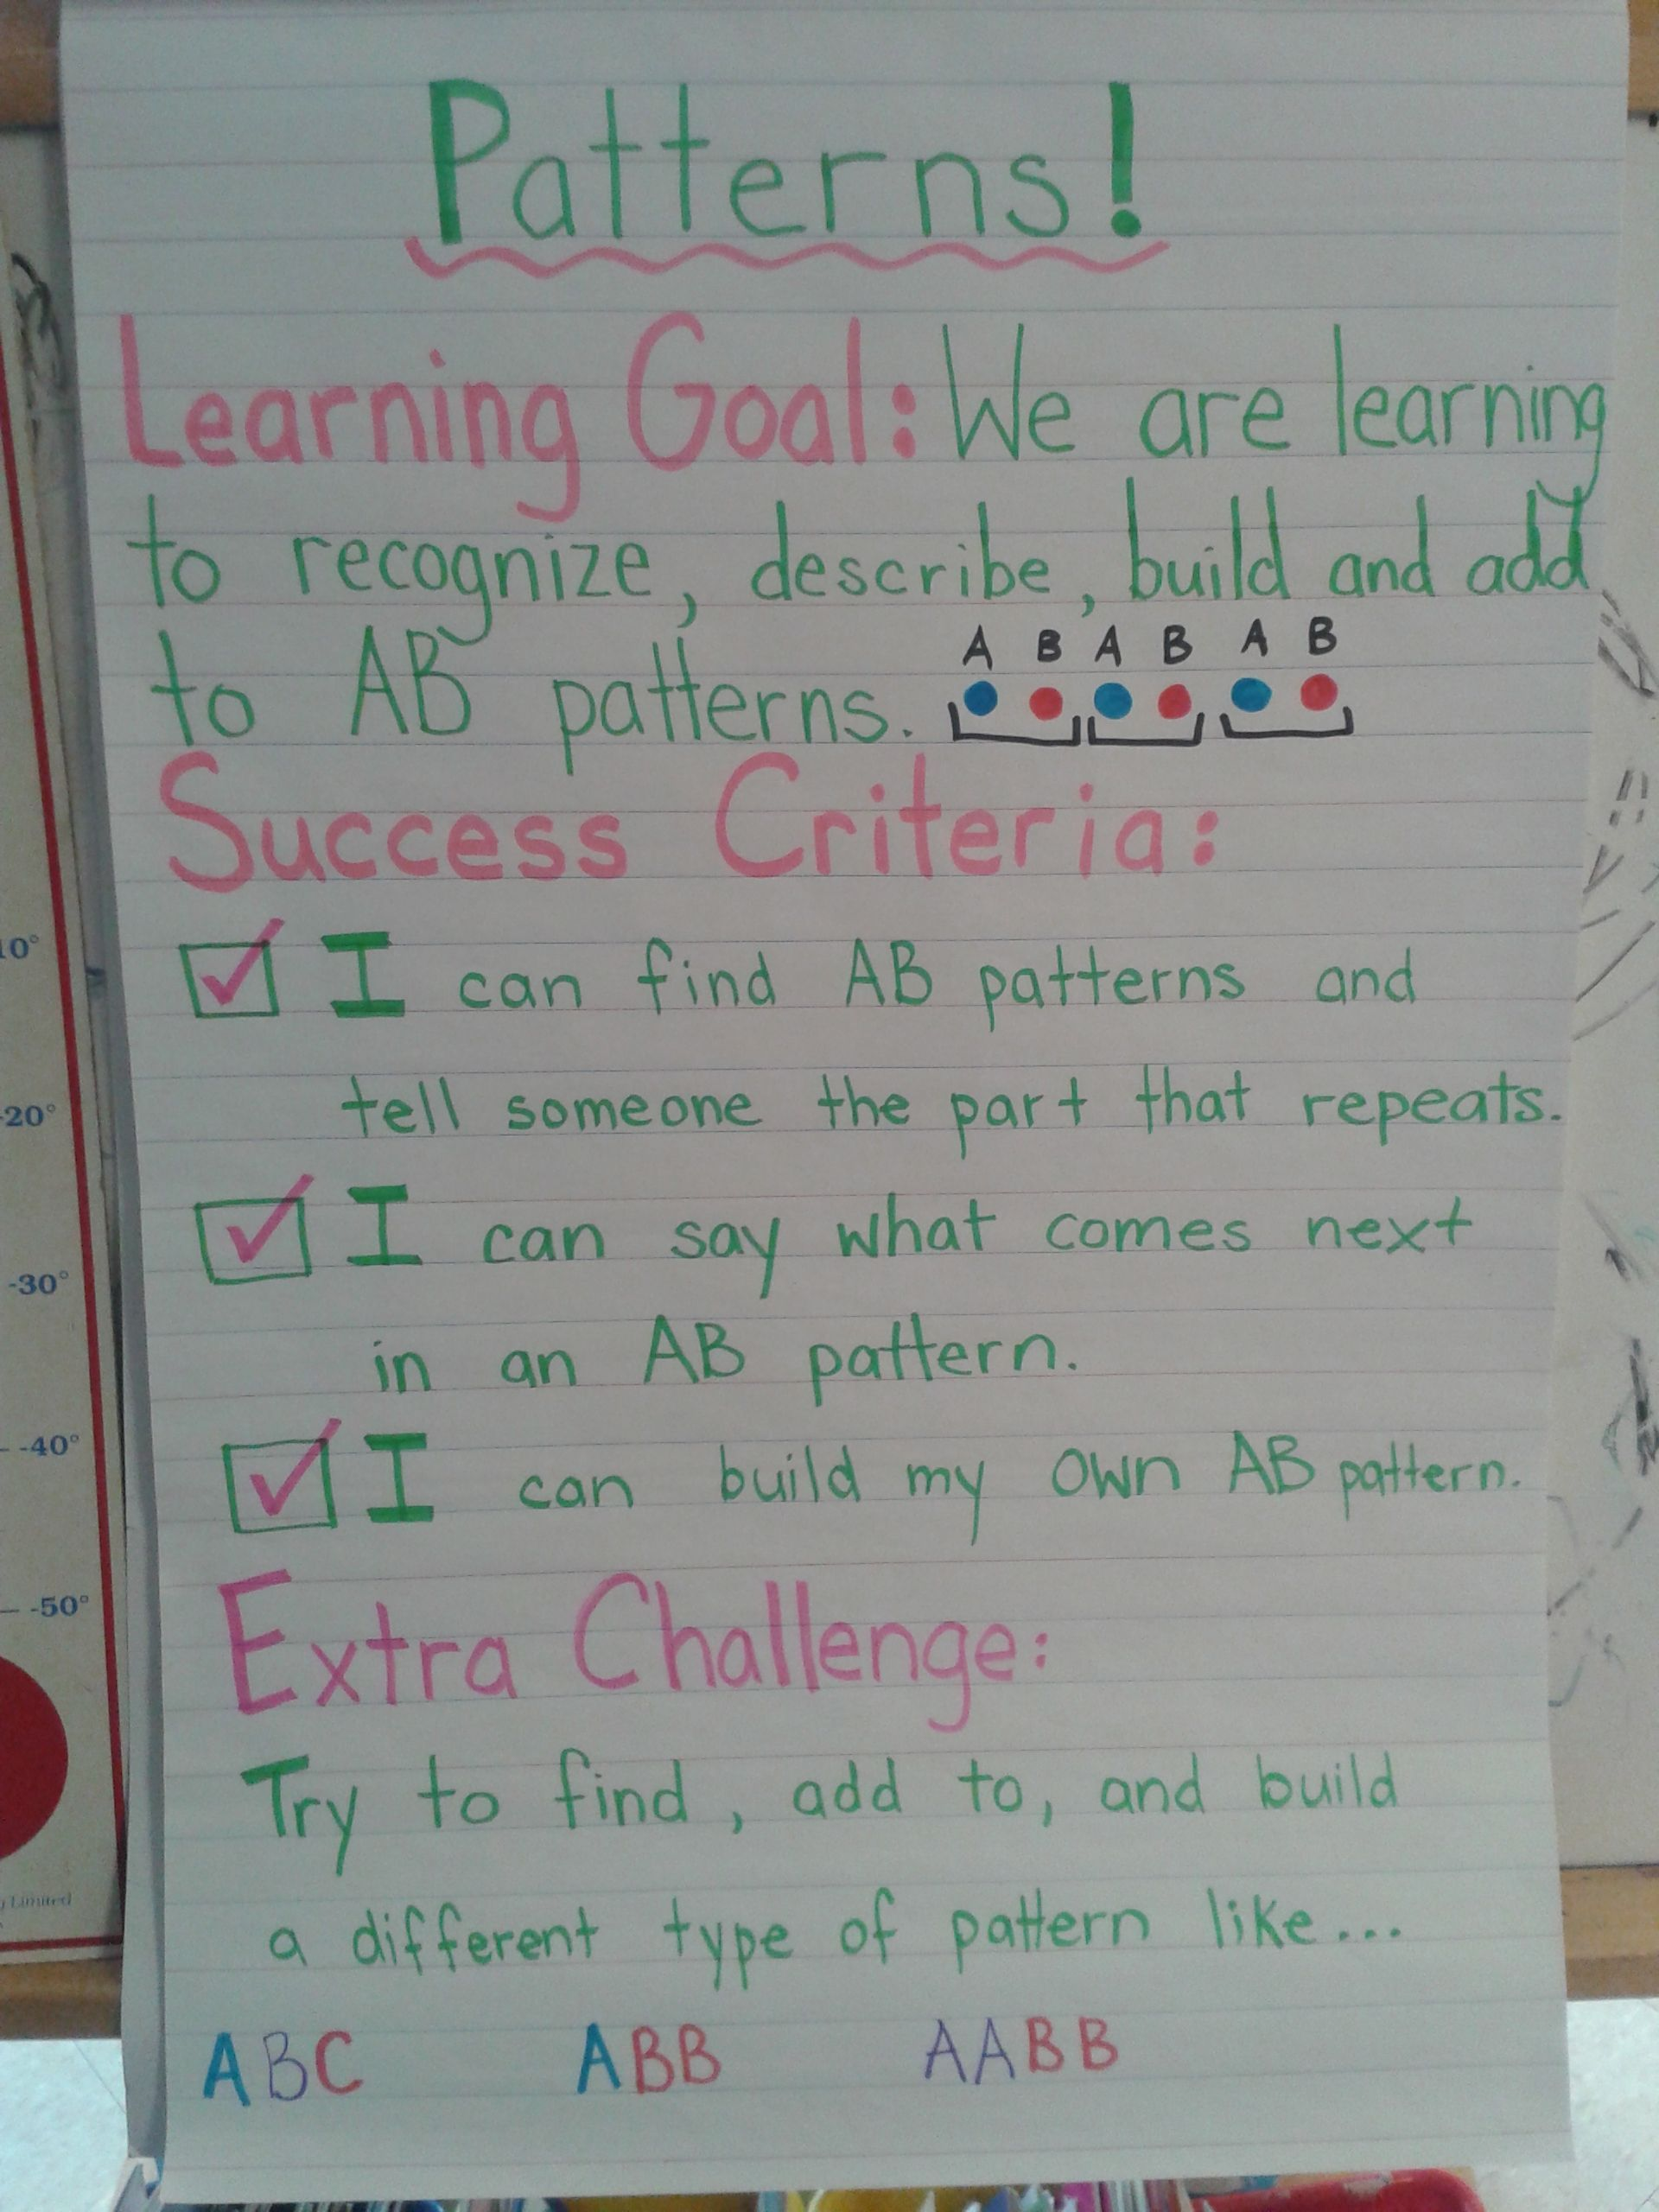 Patterning Learning Goals And Success Criteria For Kindergarten Ab Patterns